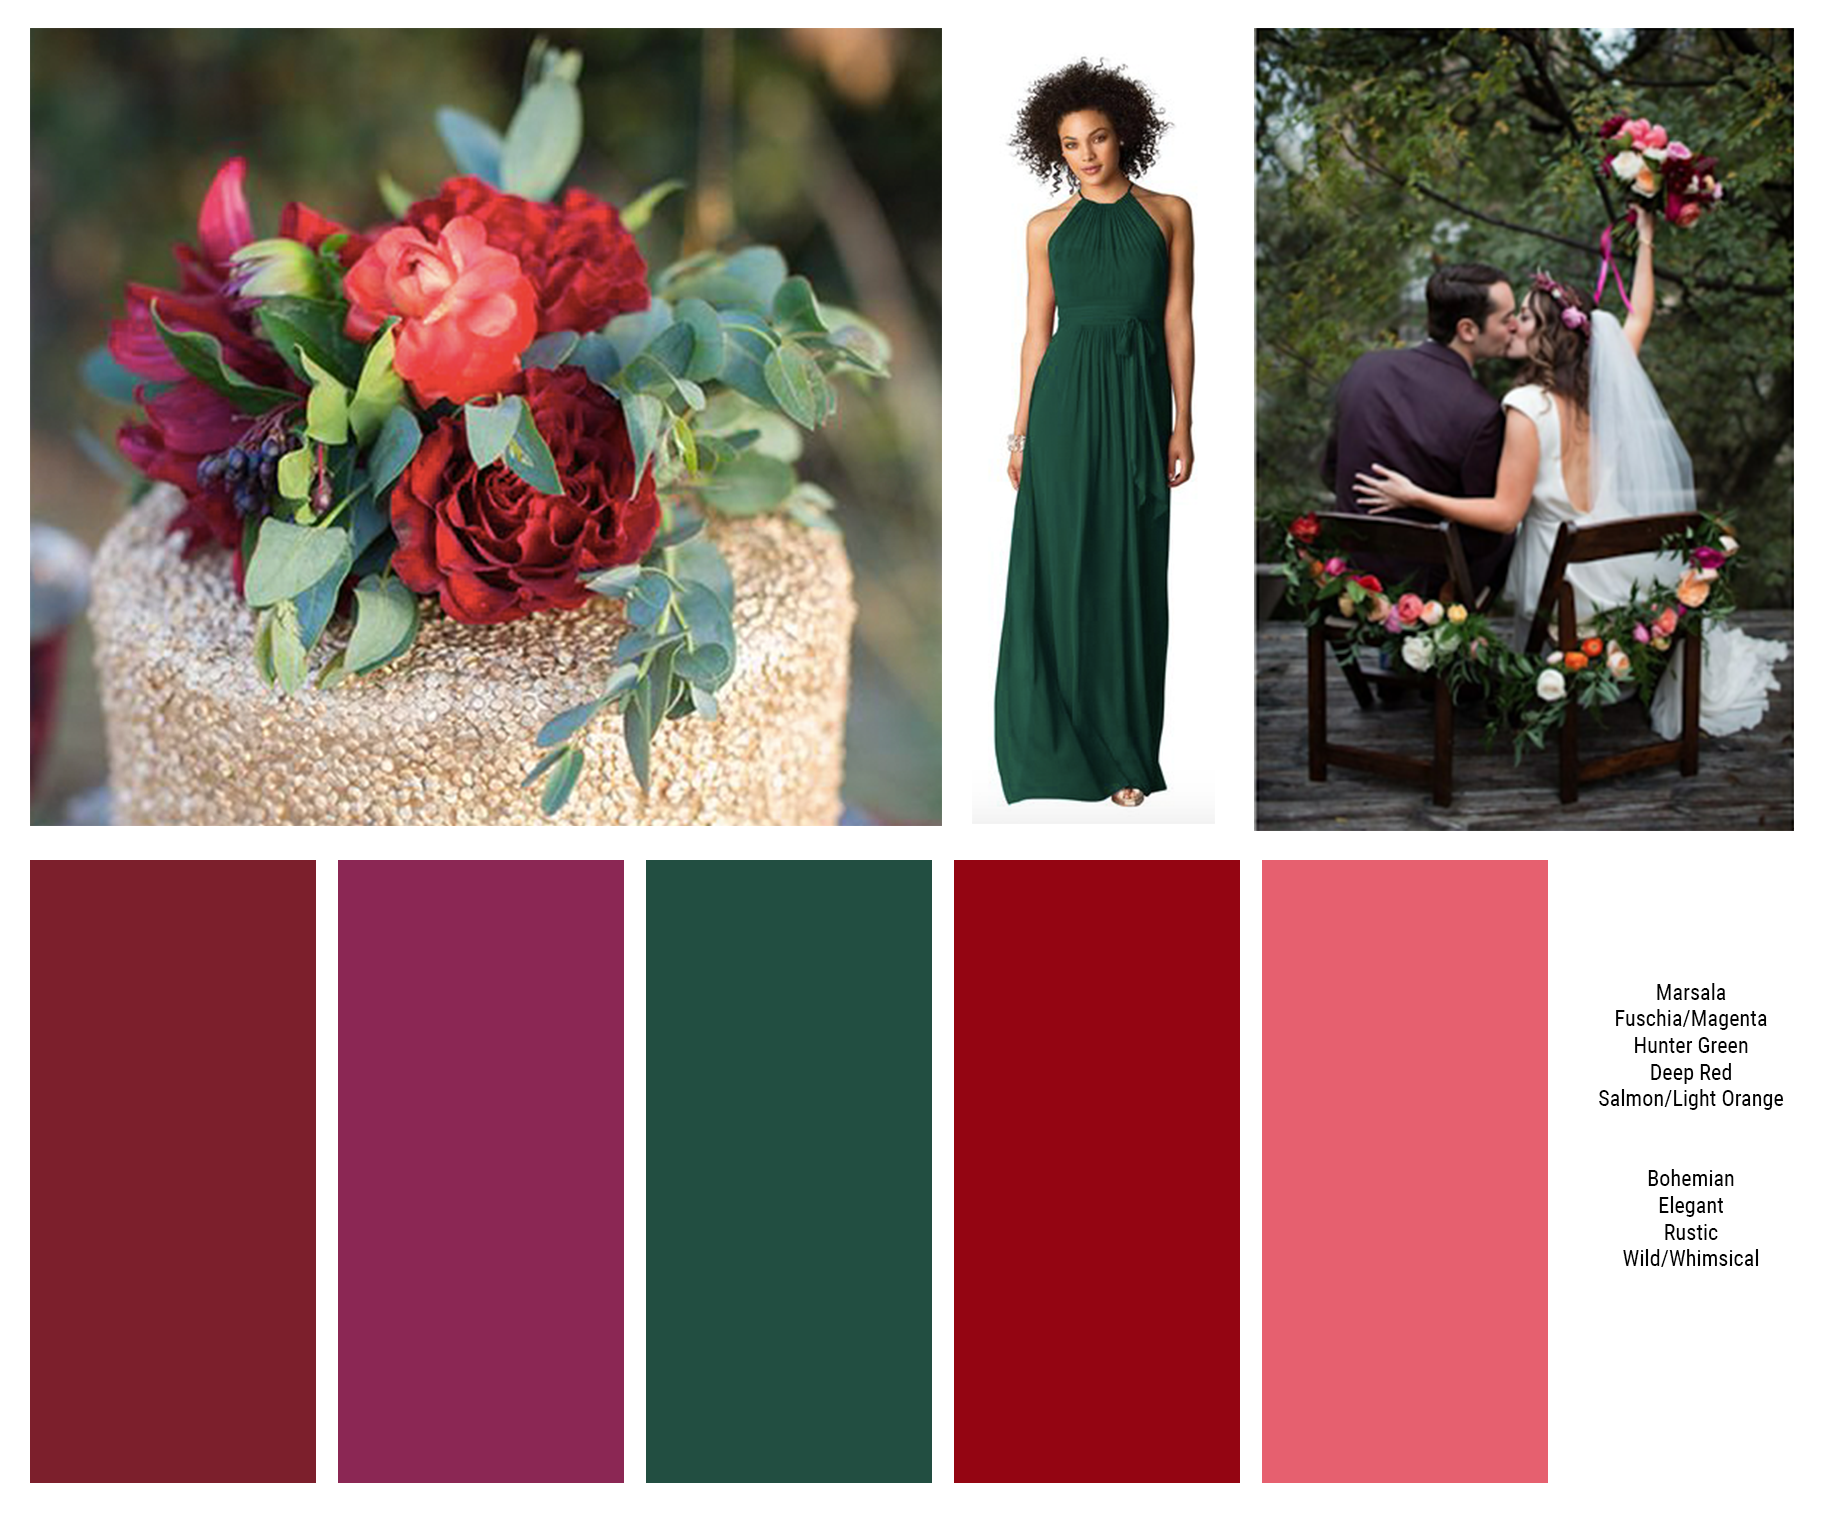 My Ideal Color Palette Bms Will Wear Hunter Green I Want Florals To Be Wild Whimsical Orange Wedding Color Scheme Orange Wedding Colors Hunter Green Wedding